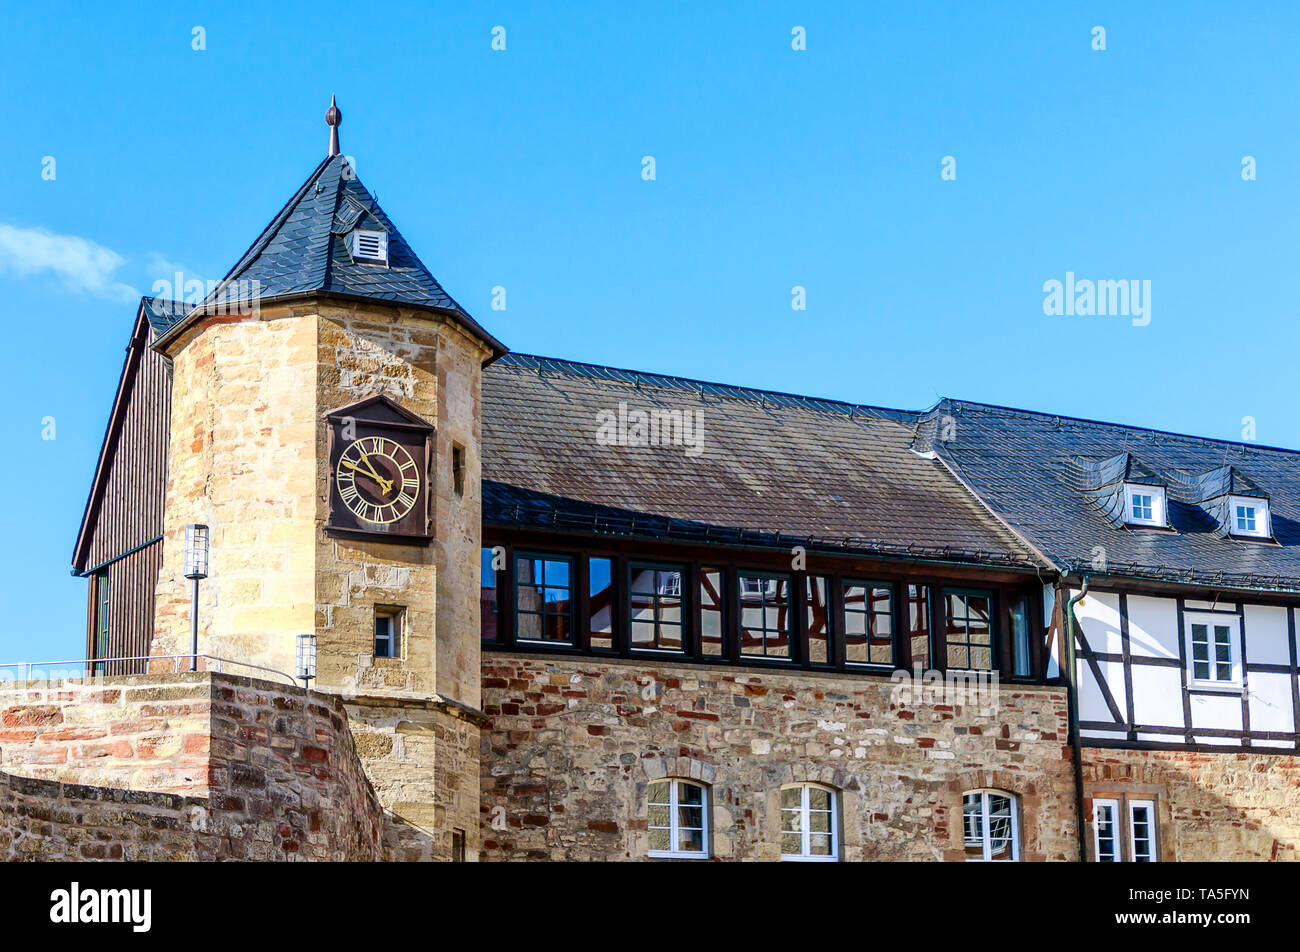 The Fortress Waldeck, high above the Edersee in Hesse, Germany - Stock Image